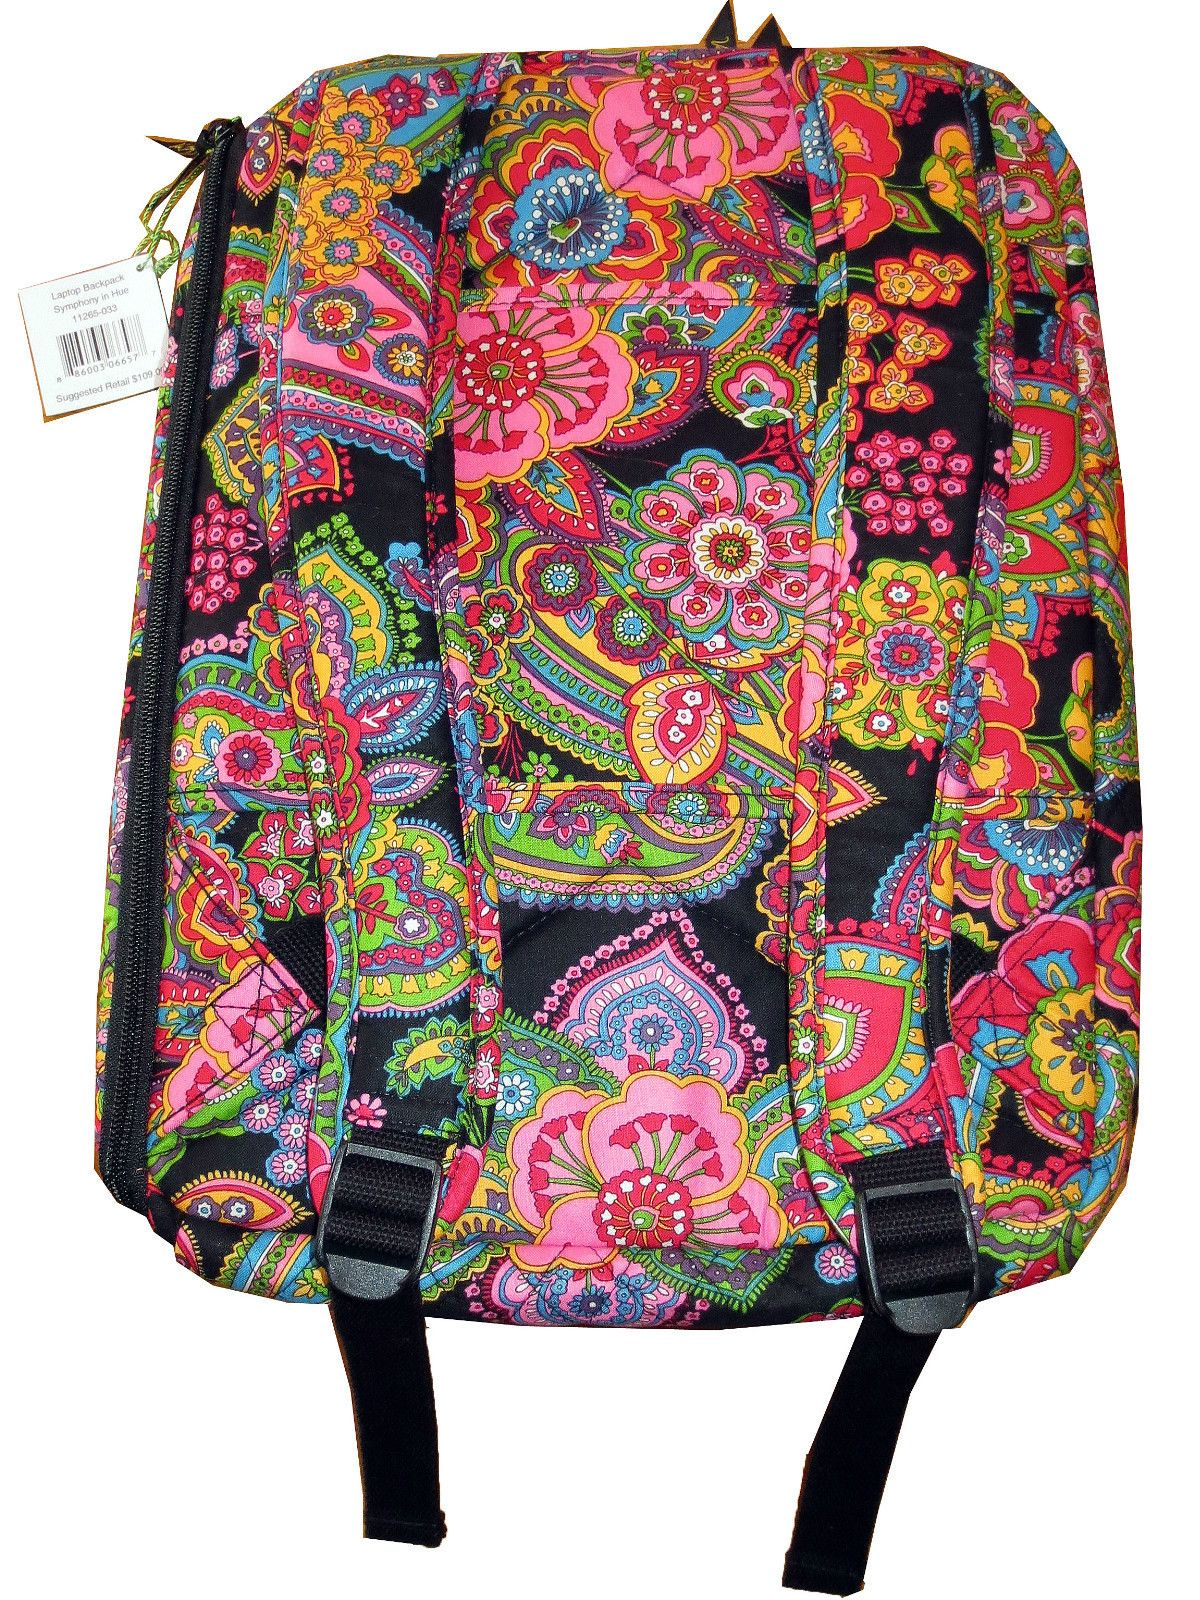 Vera Bradley Laptop Backpack in Symphony in Hue Retired Pattern Brand New ~  BACK TO SCHOOL COLLEGE SALE! bf94e7f6dd39e